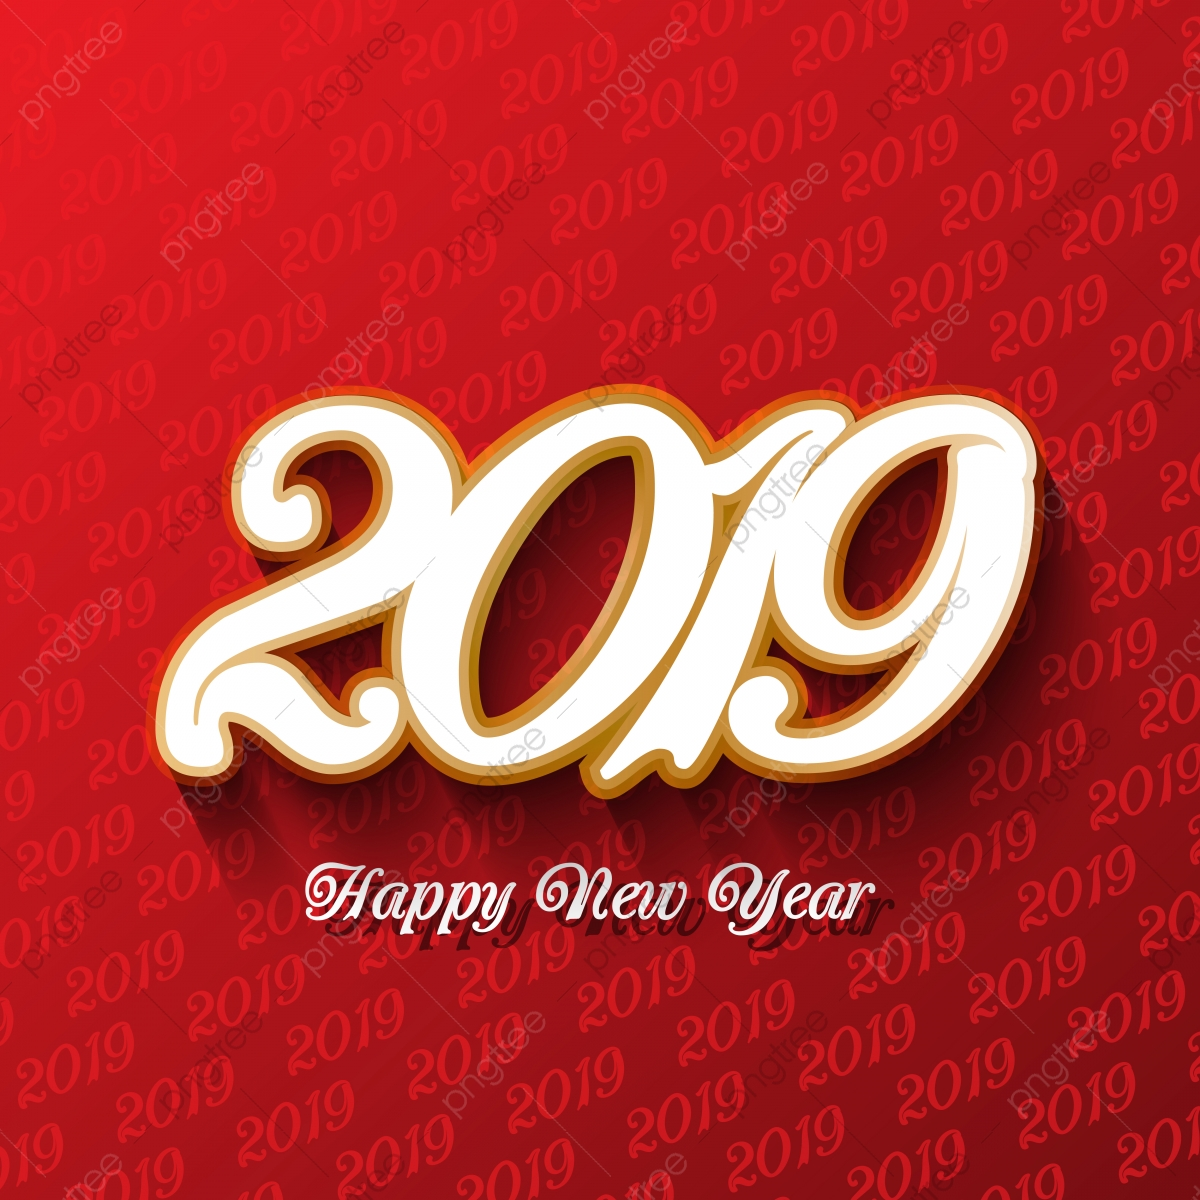 Happy New Year 2020 Background Fireworks — Stock Vector © tieulong  #227294100